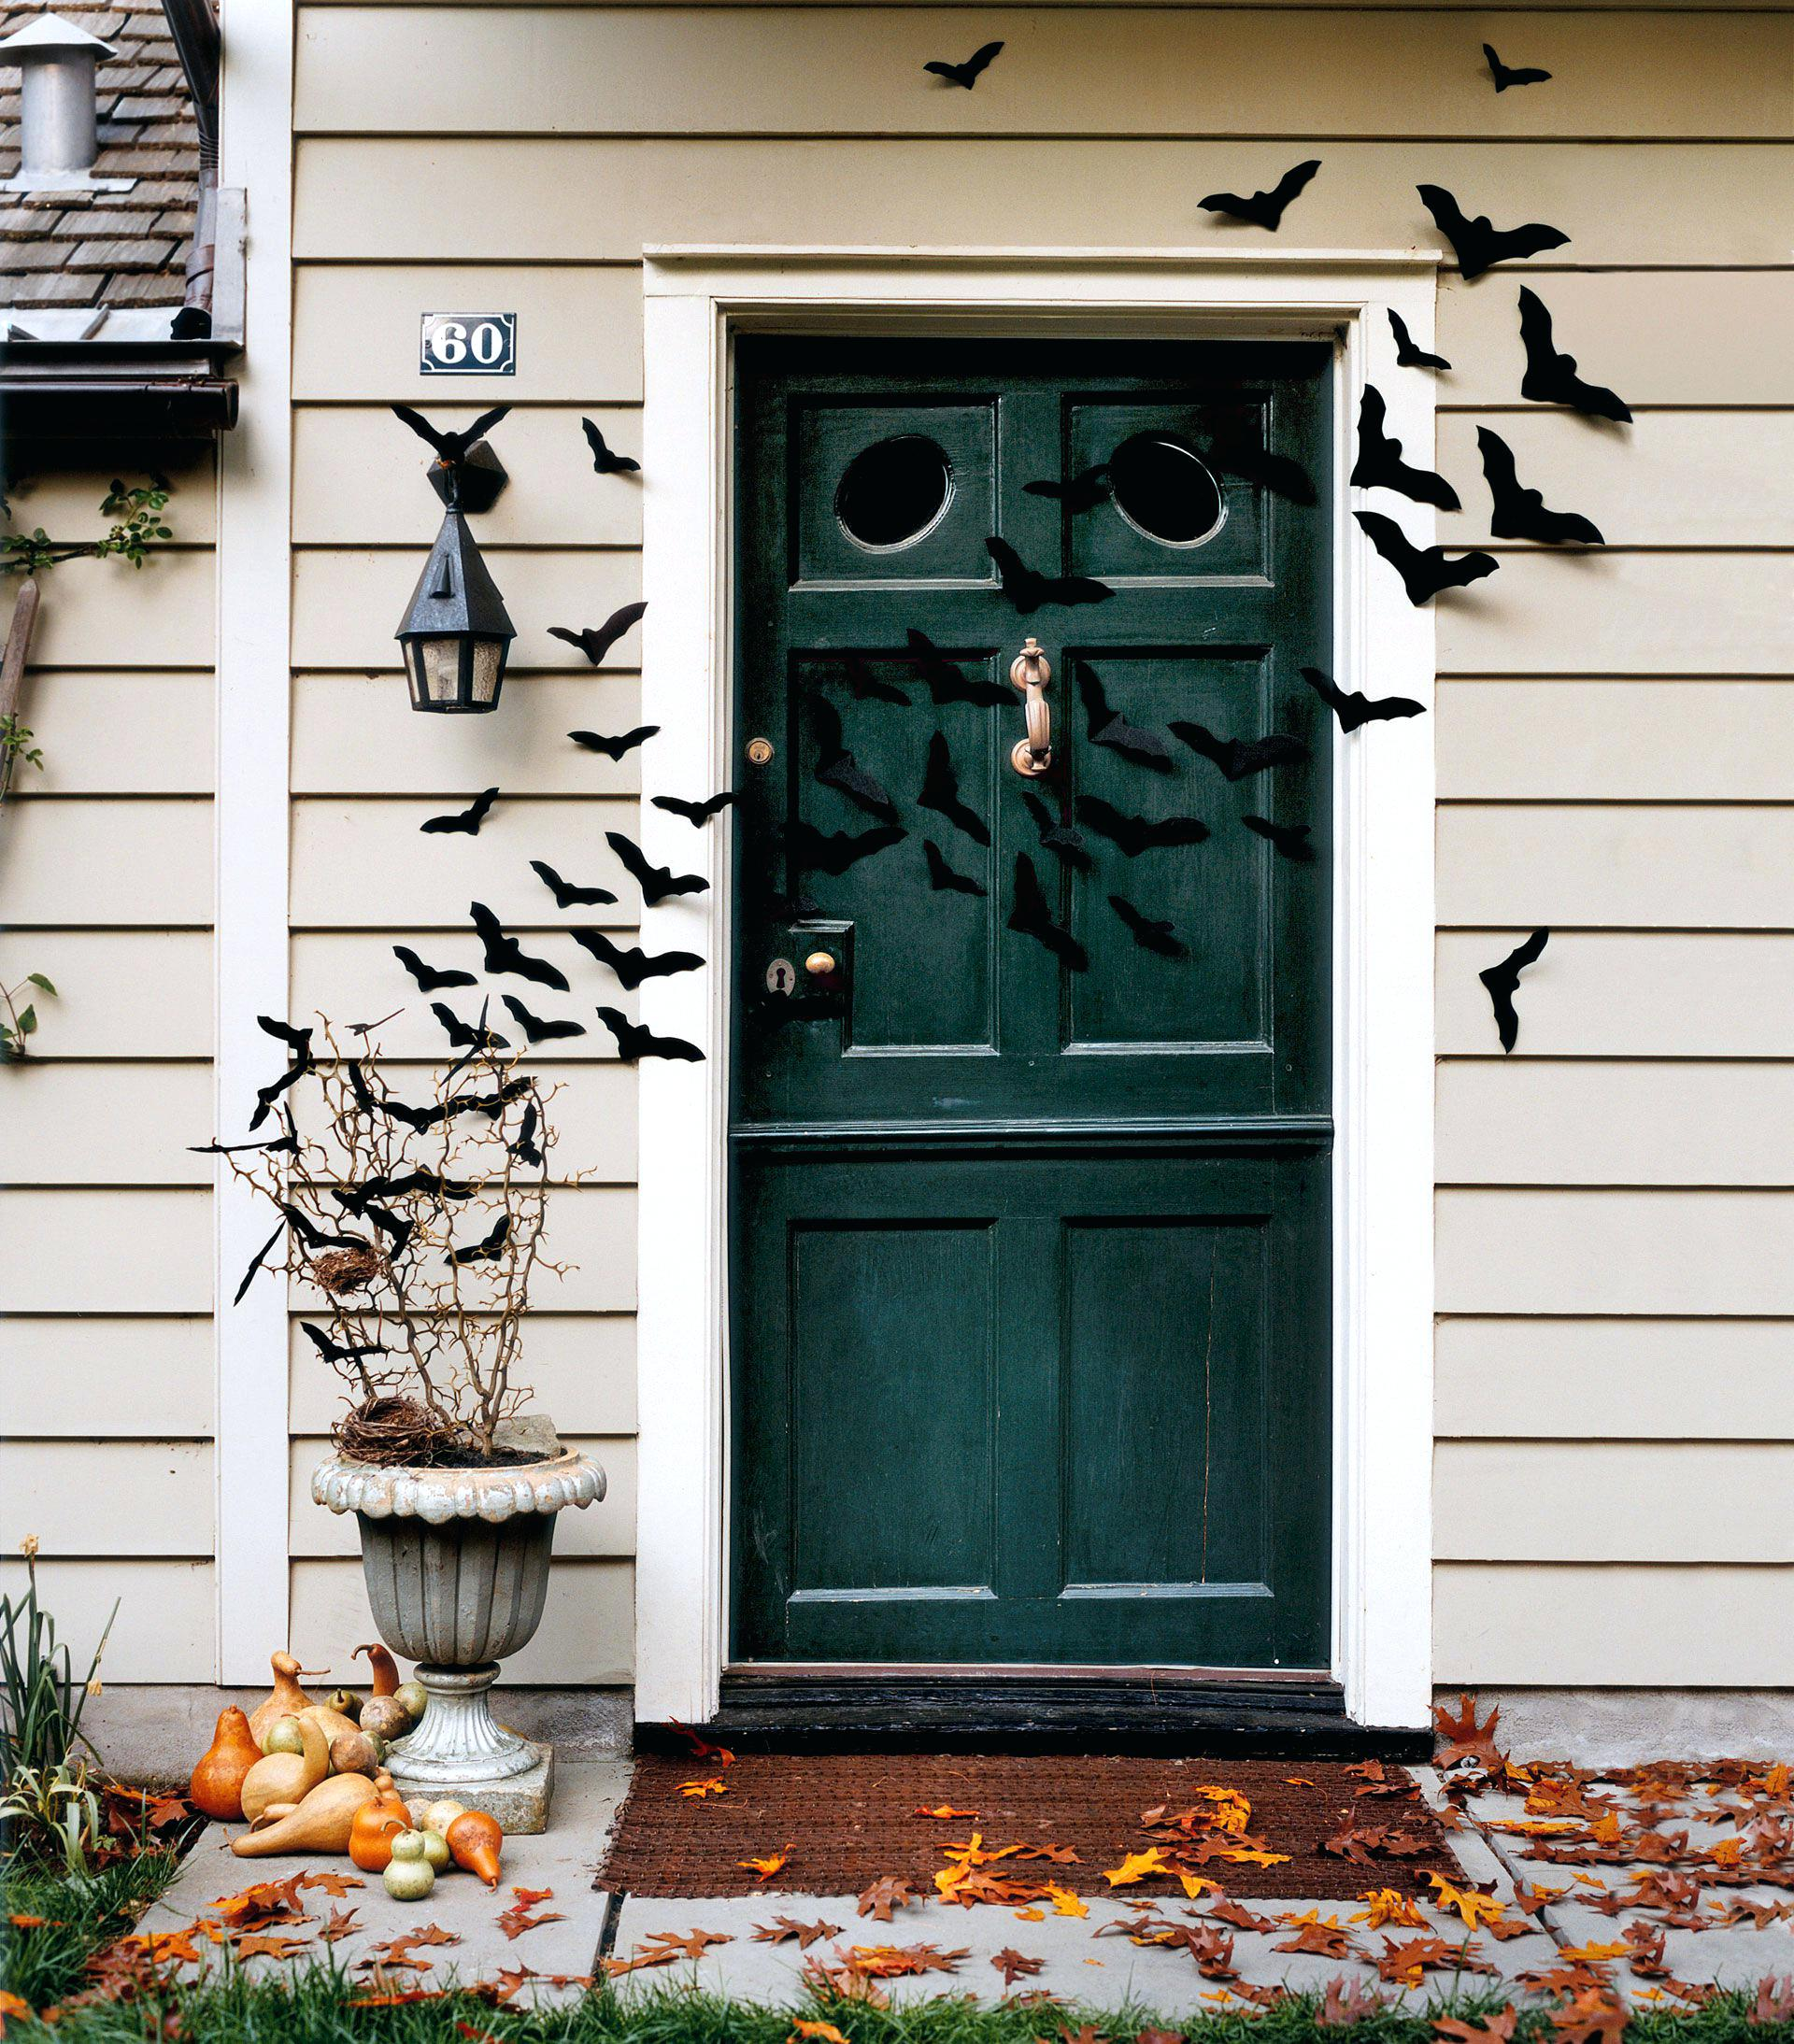 Buy It or DIY It: Cover Your Front Door with Bats | Country Living | Pinterest Picks - Halloween Decor